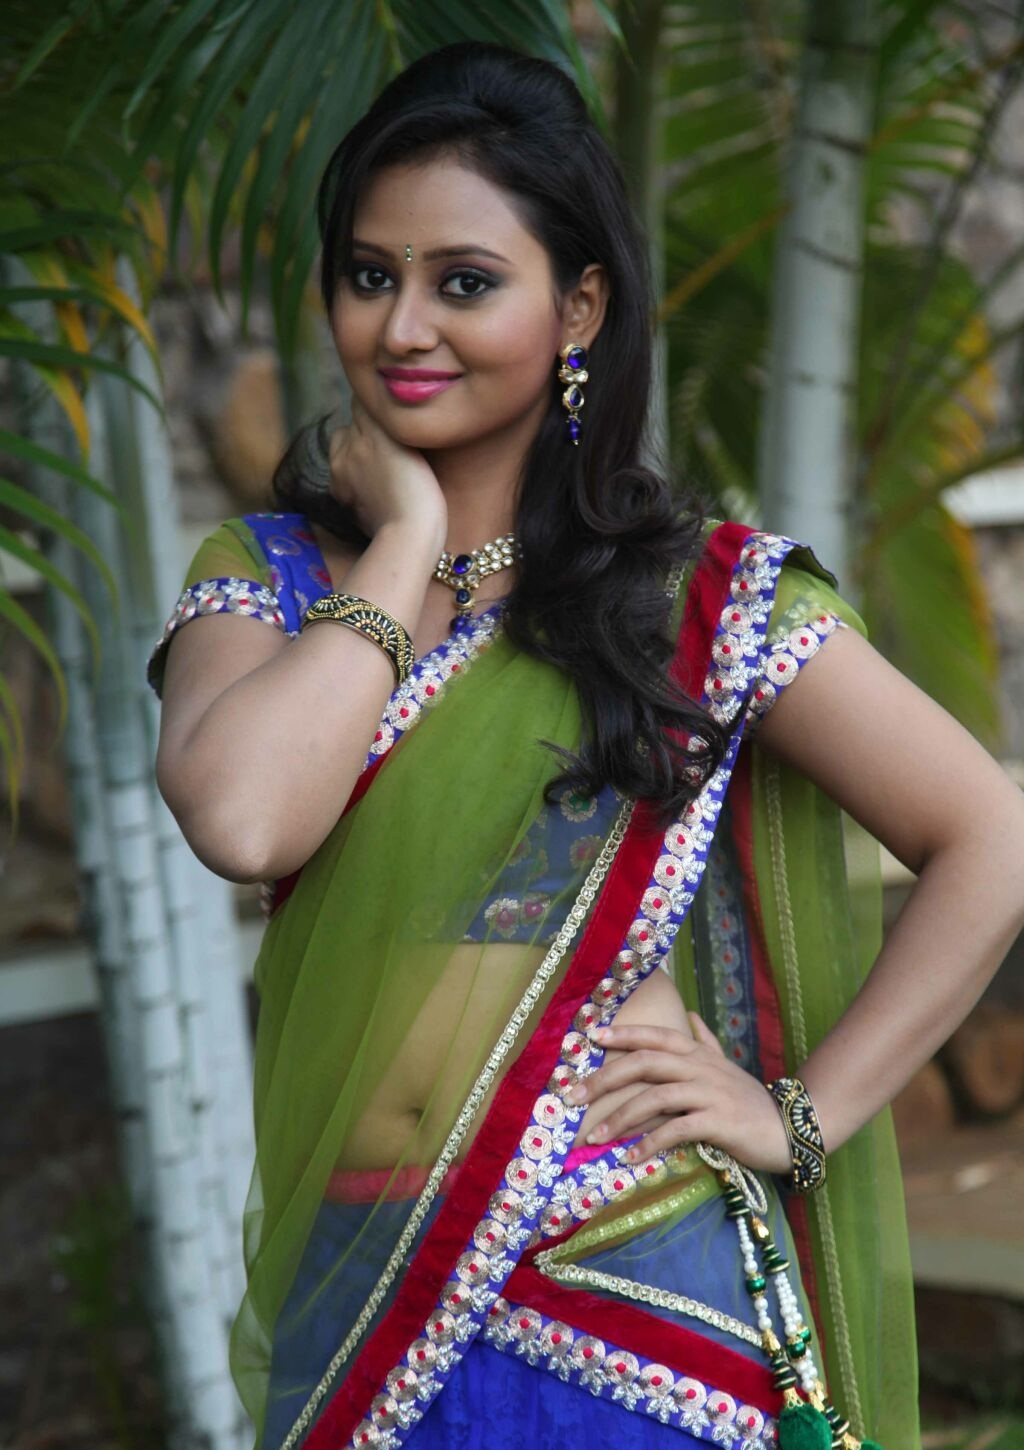 amulya photos, pictures, wallpapers,